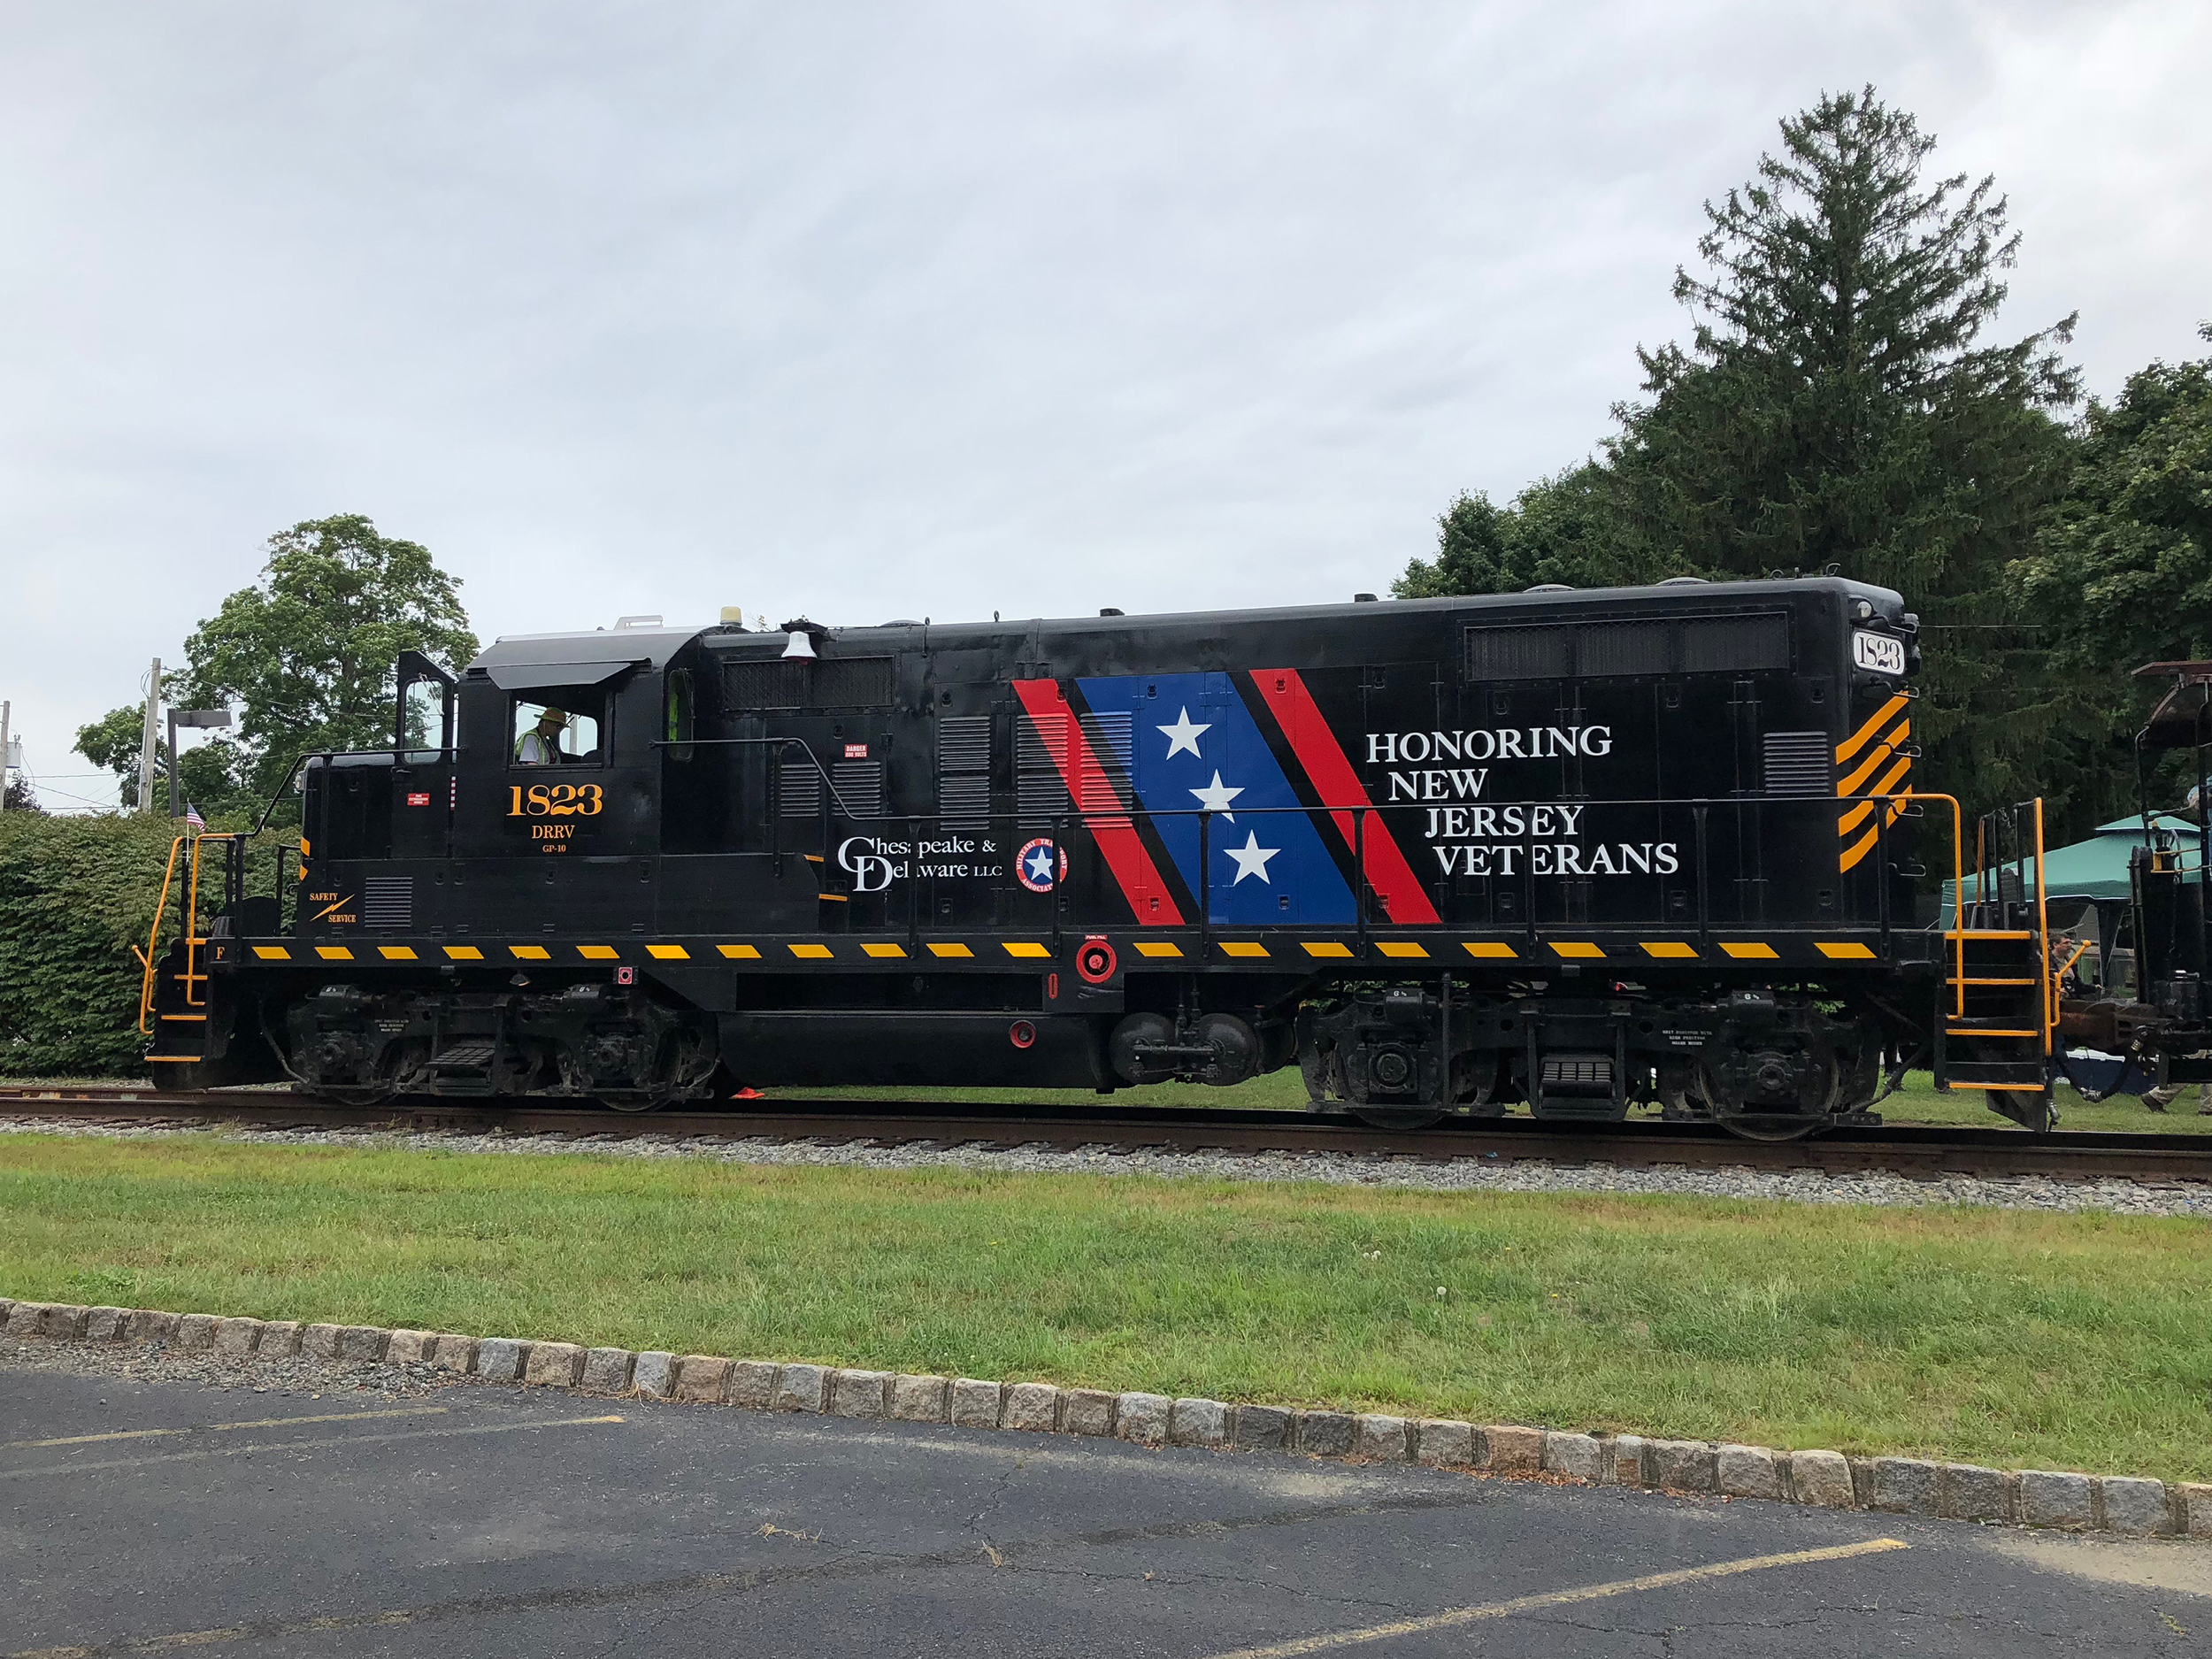 Veterans Locomotive   Unveiled on Sept. 8, 2018   Click Here to Learn More